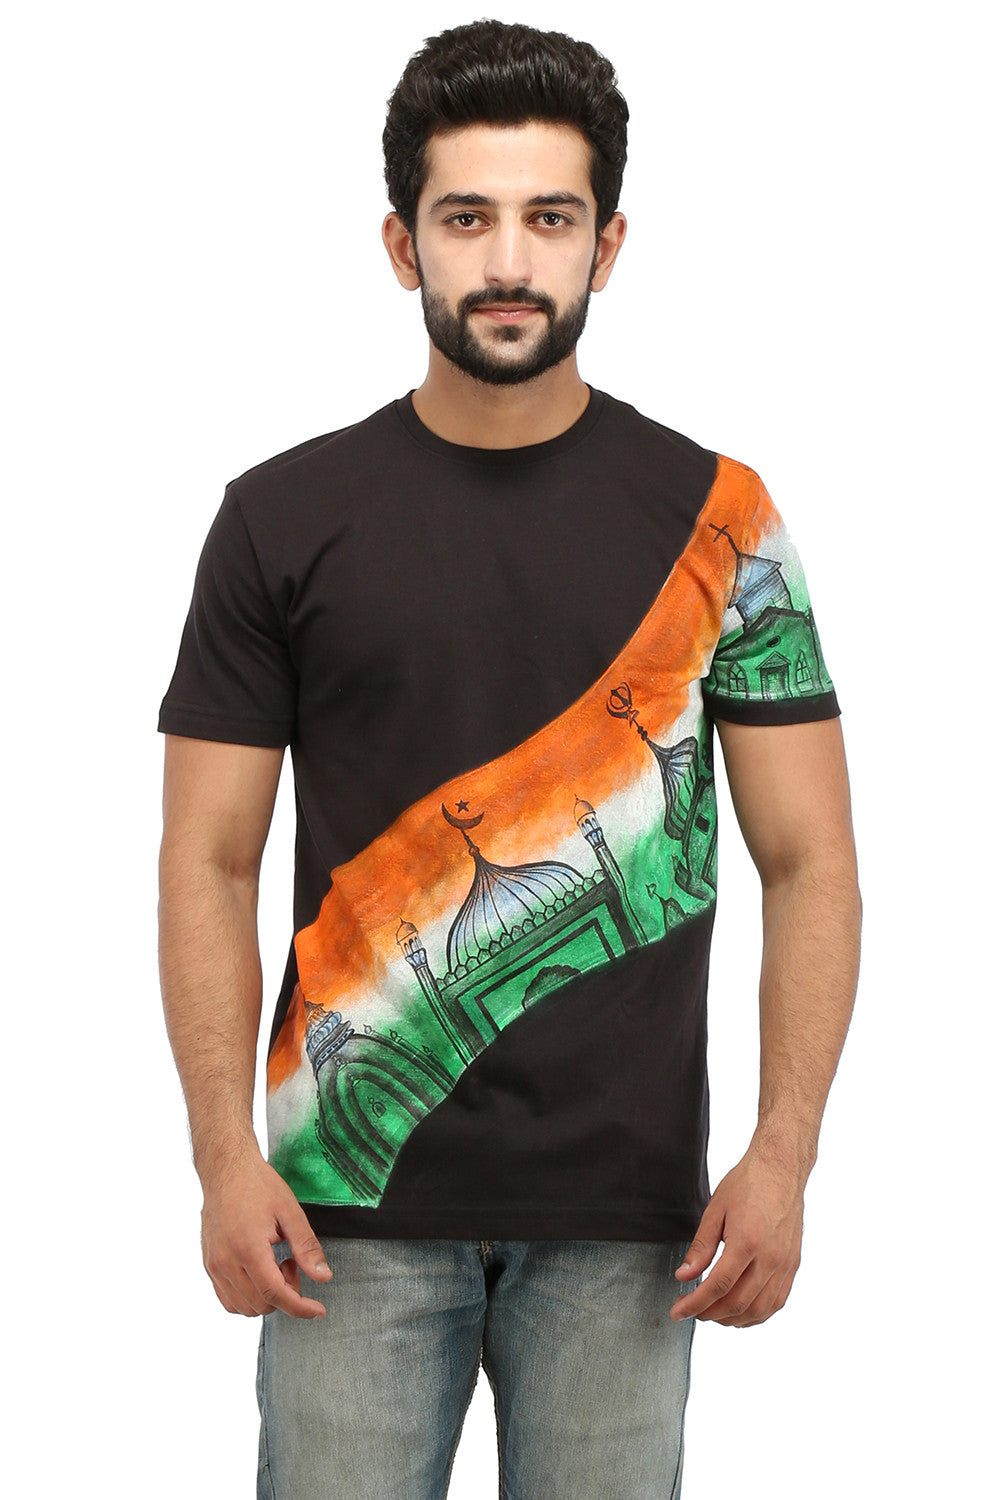 Hand-painted Unified India Black T-shirt - Rang Rage  - 1